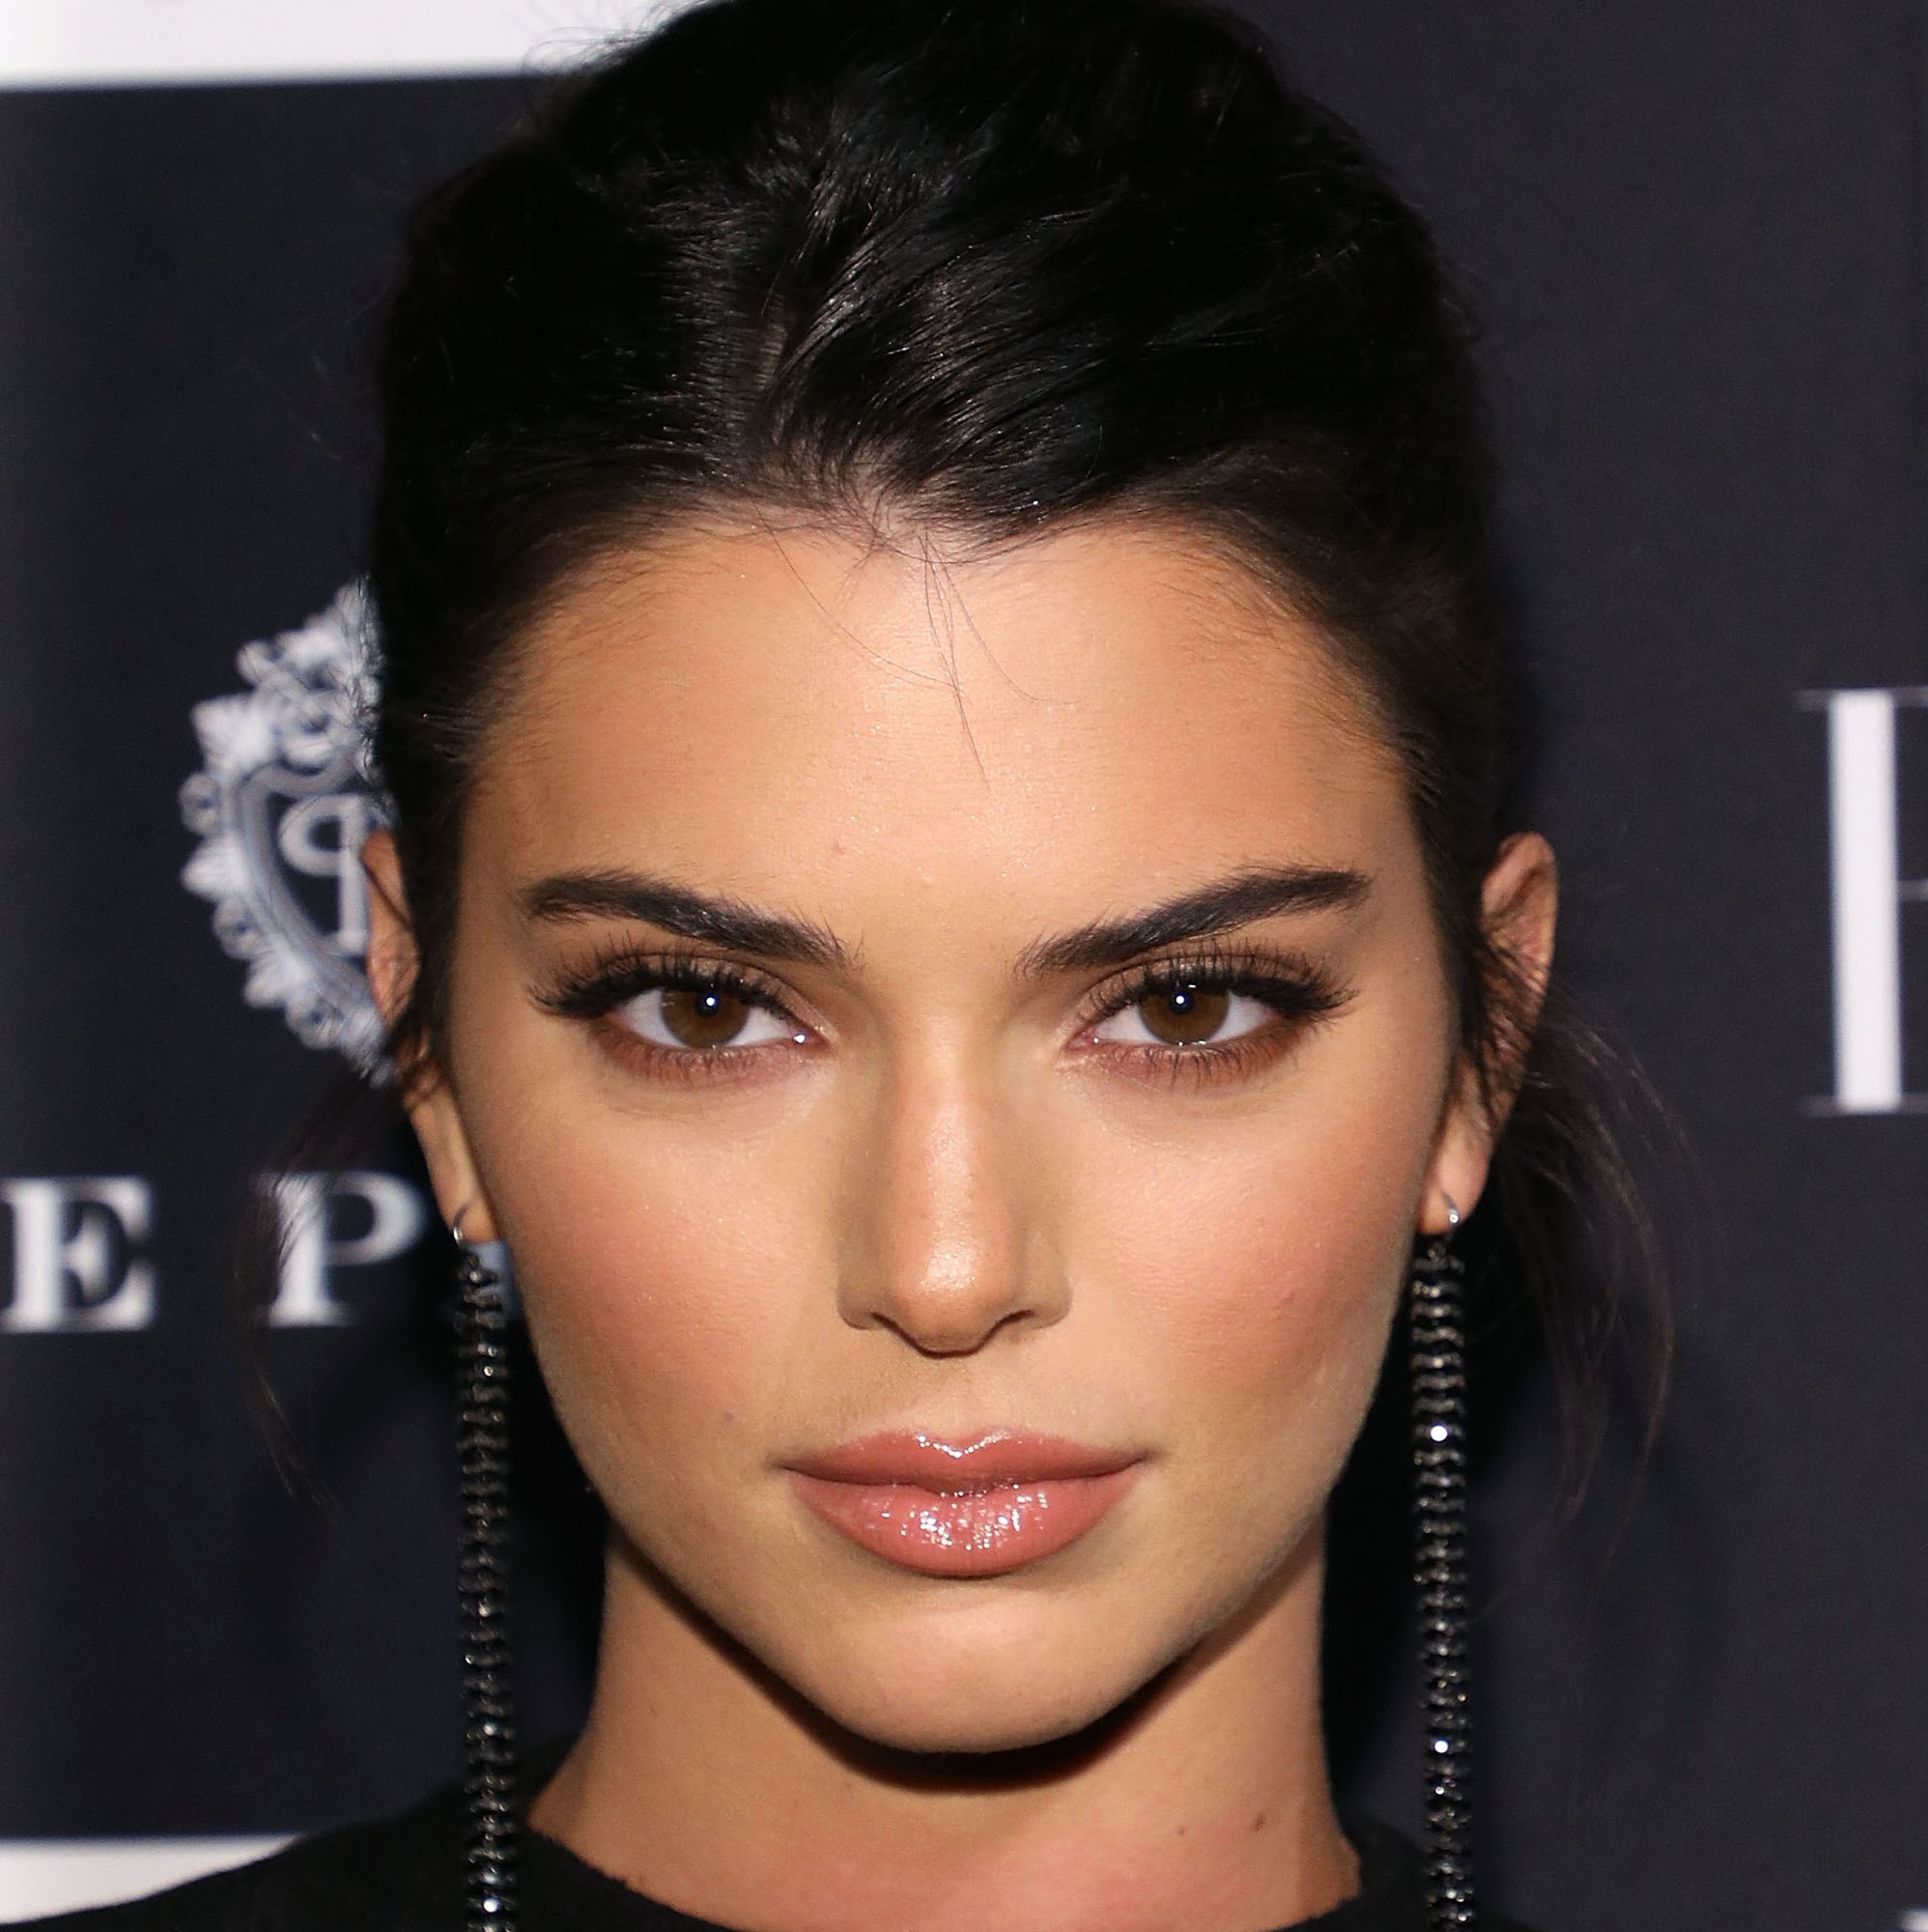 Kendall Jenner Always Wears This Unexpected Neutral & It's Stunning